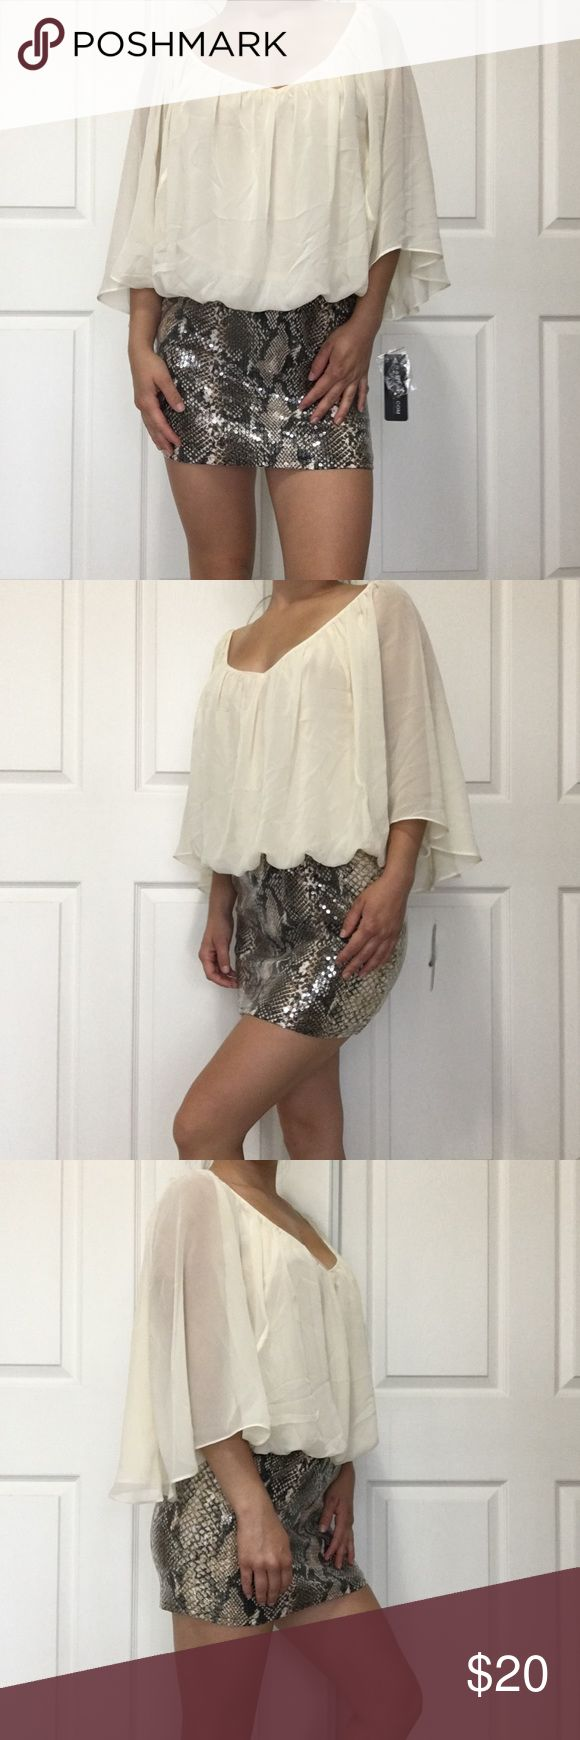 Going out dress Fun and flirty going out dress from Rampage! Chiffon type material up top, fun flowy sleeves with a sequined patterned skirt. Has great stretch to it for comfort. Pretty sheer, should wear nude under! NO TRADES Dresses Mini